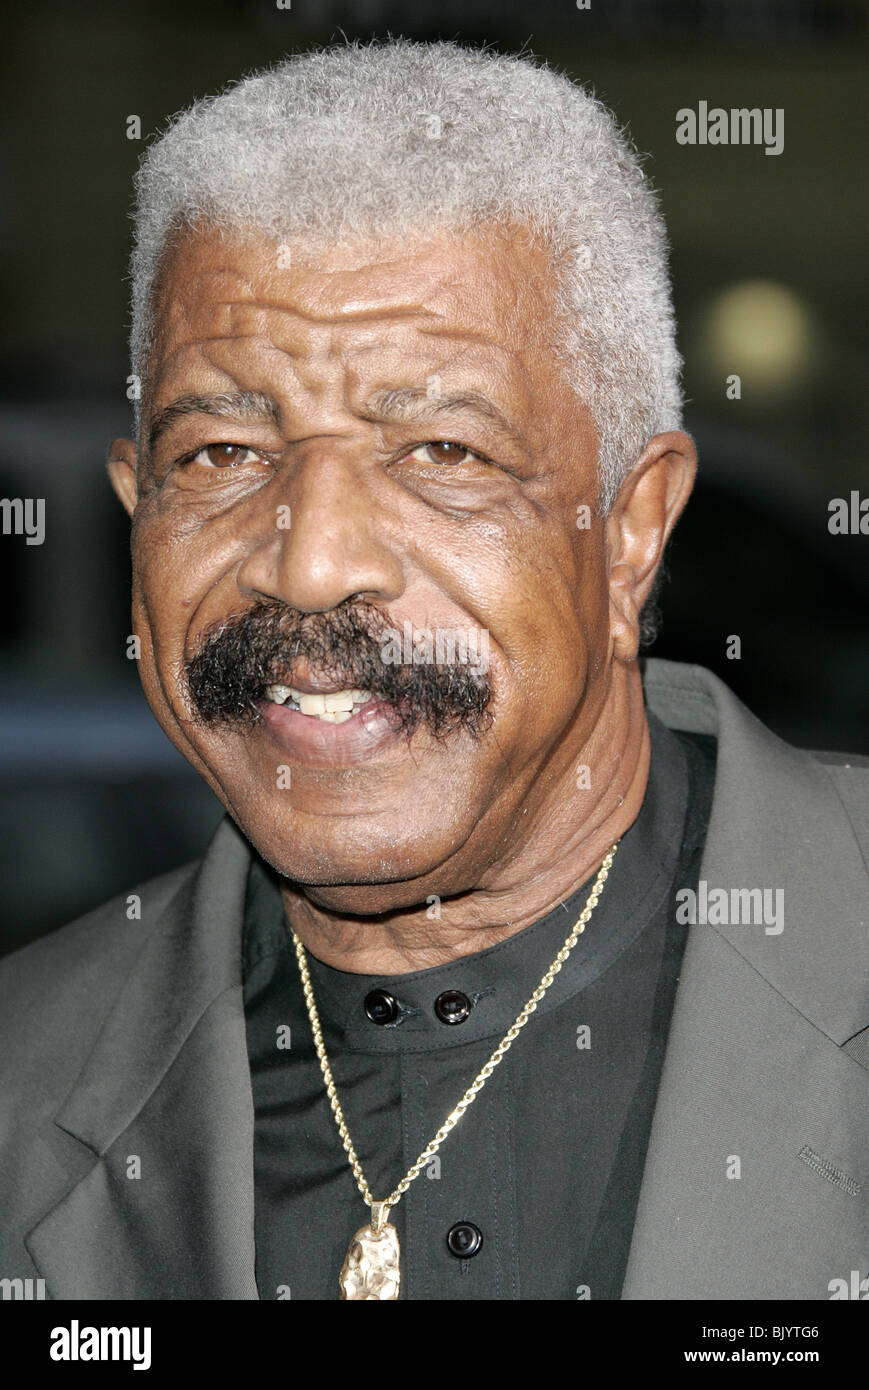 hal williams imdb